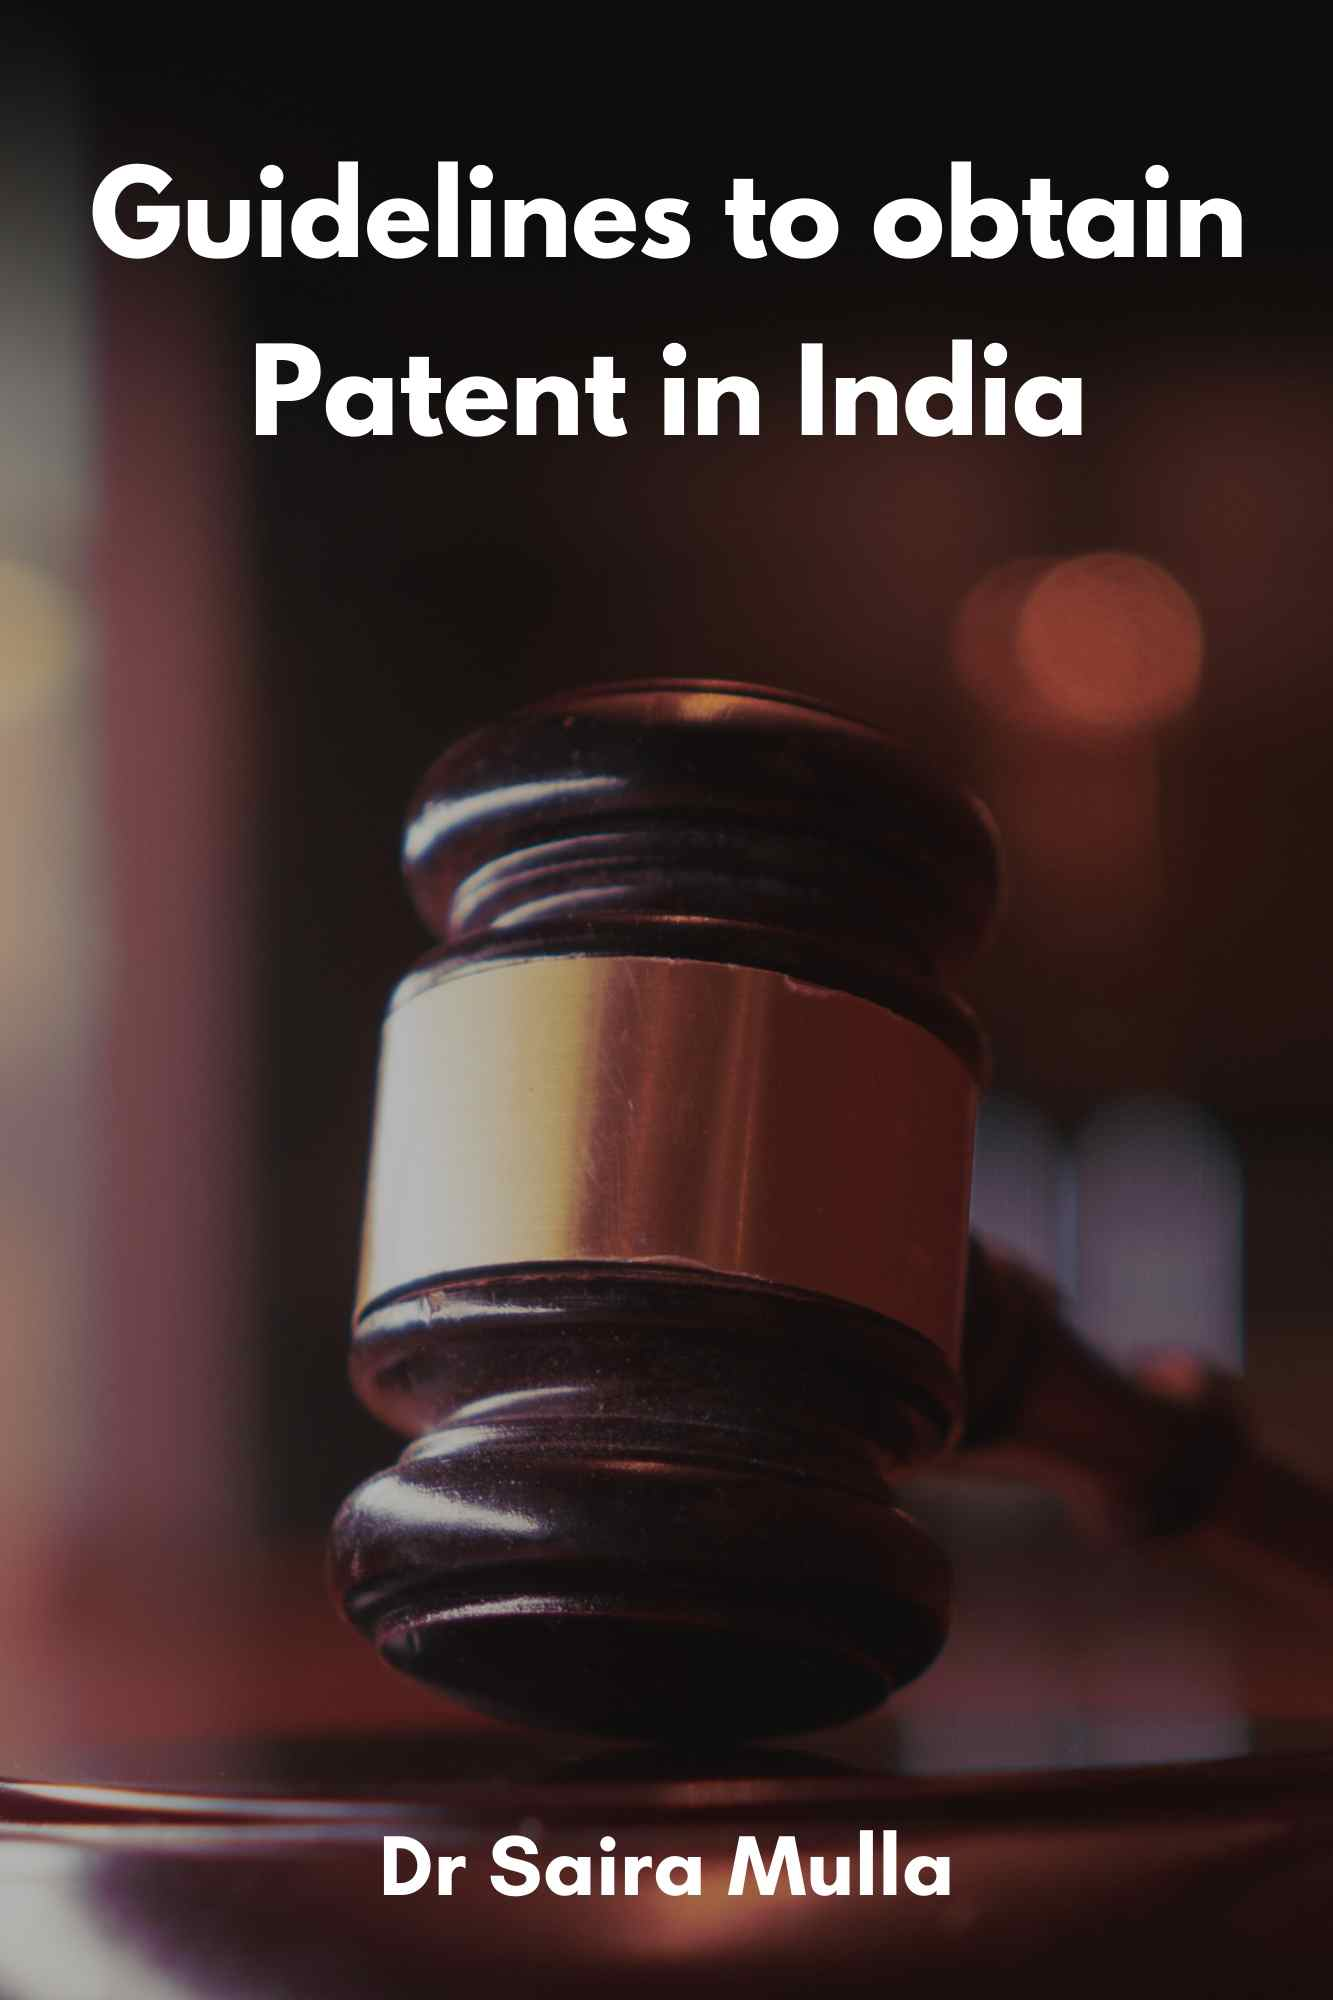 Guidelines to obtain Patent in India